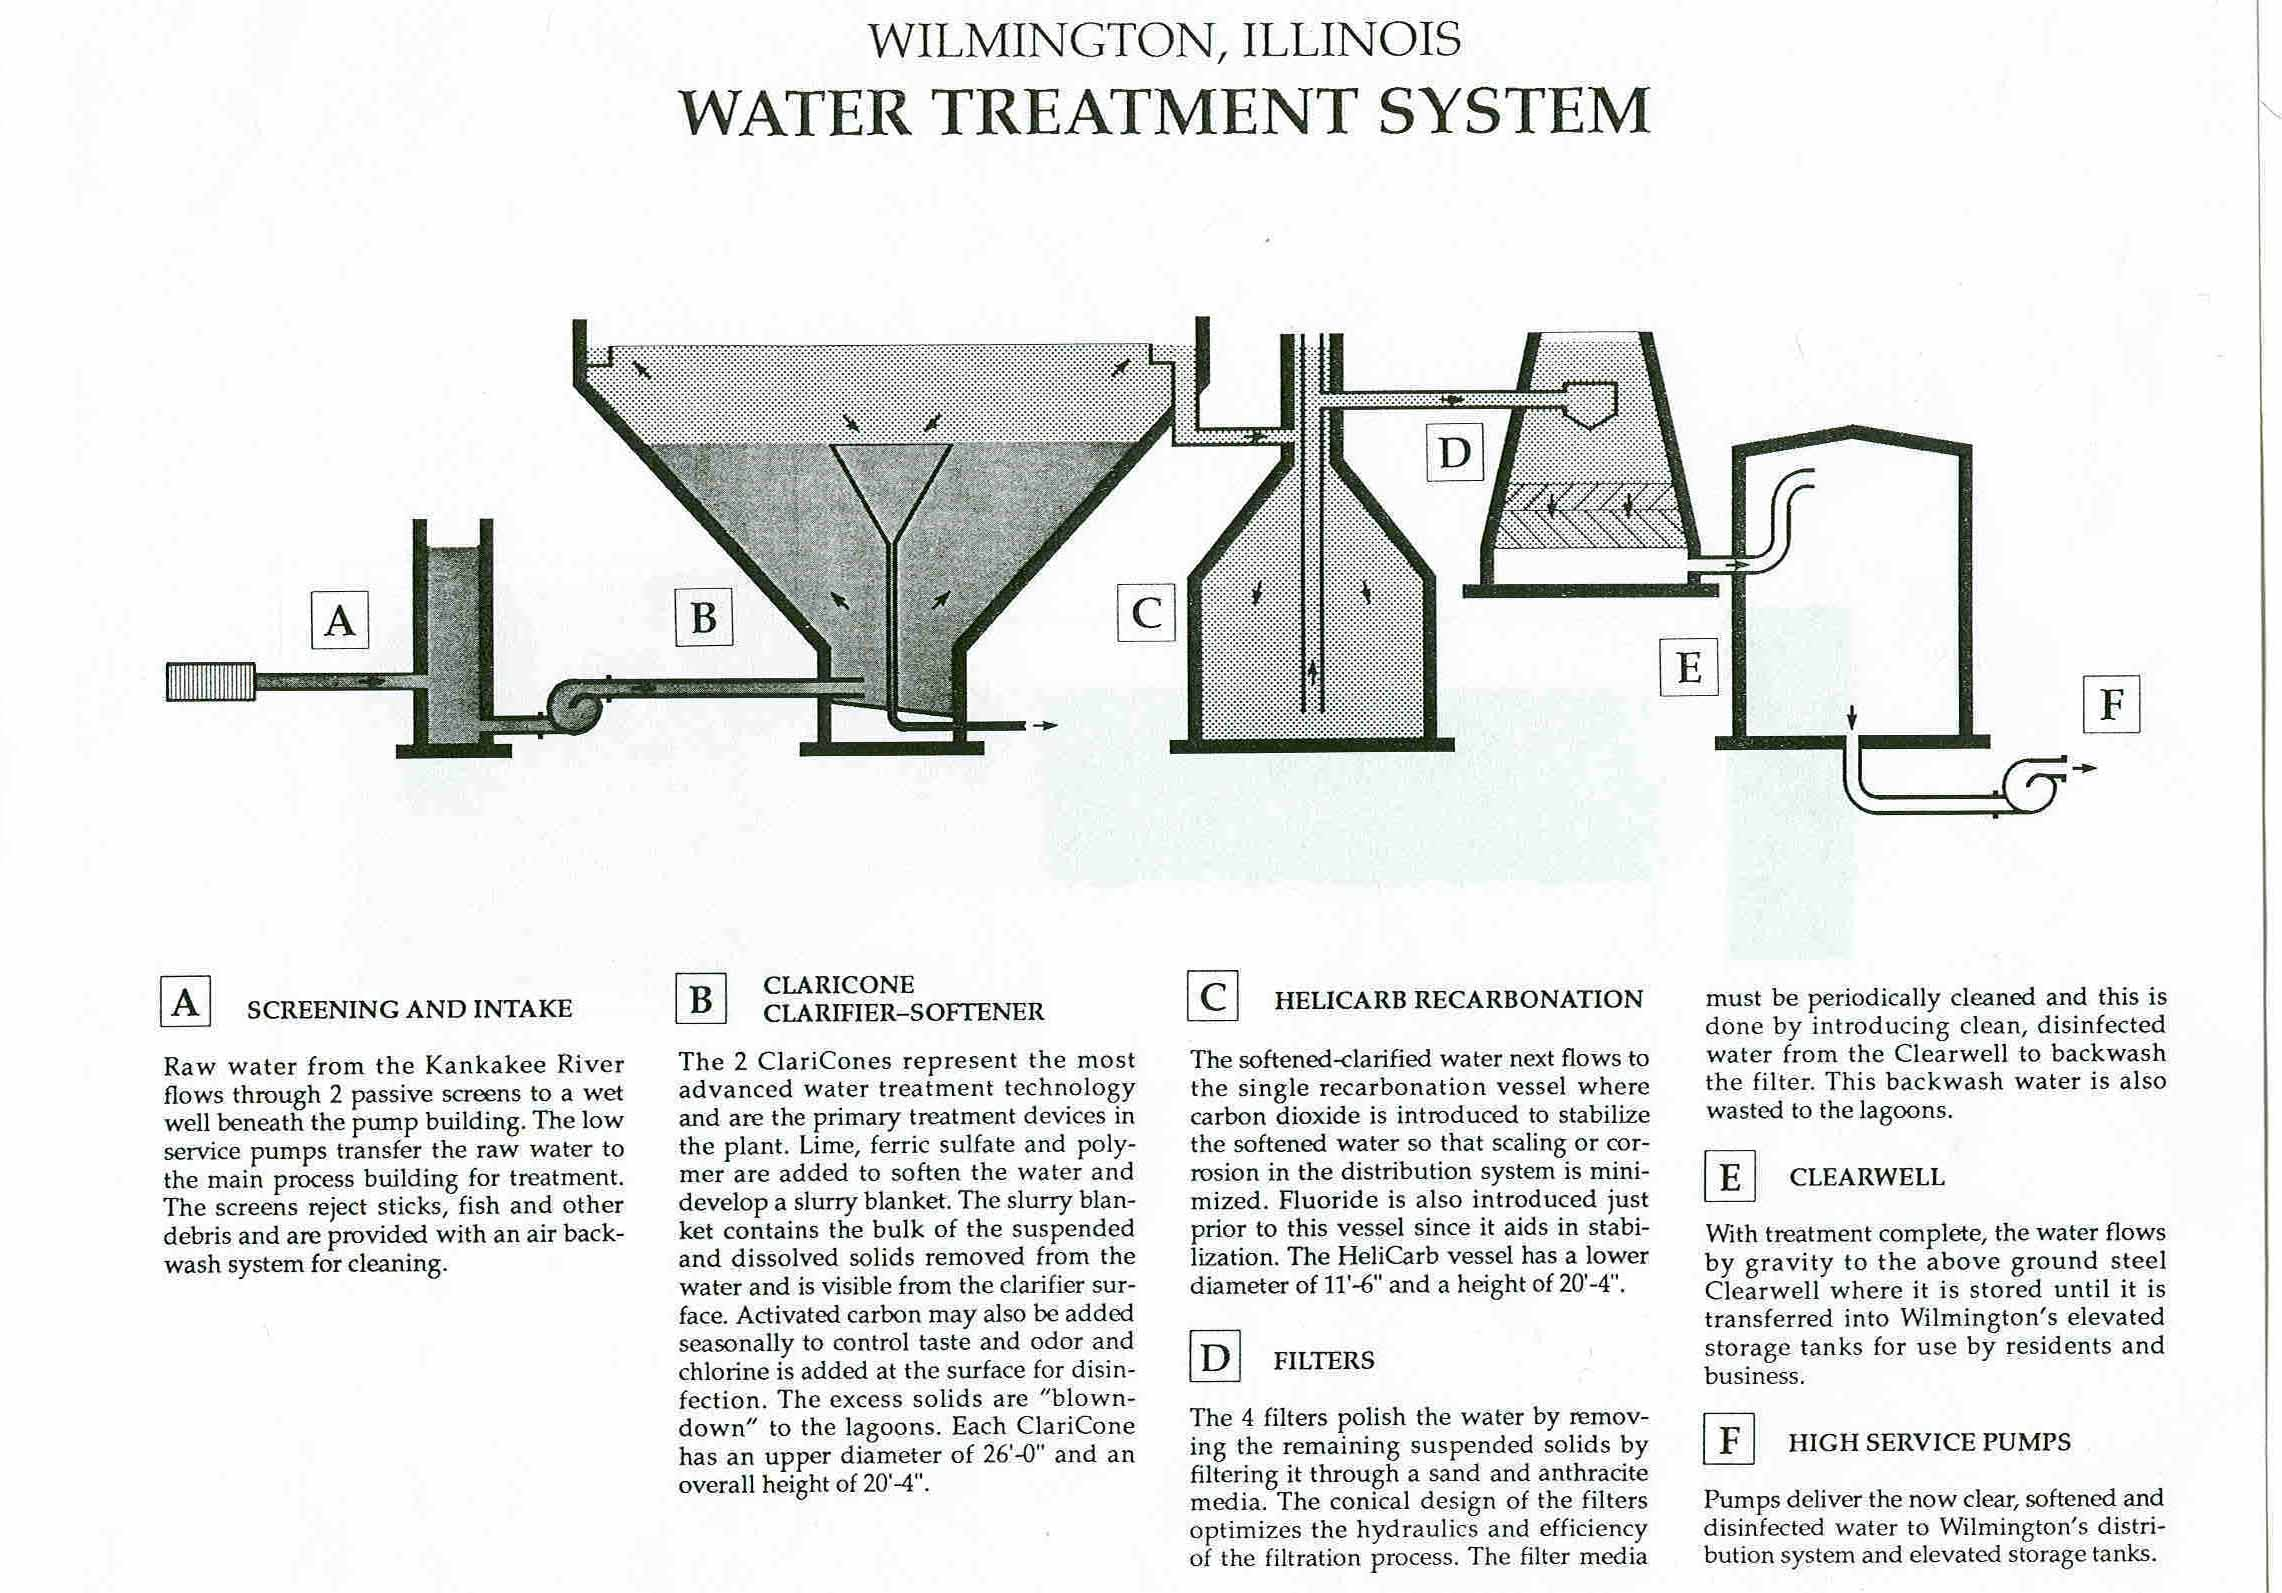 worksheet Water Worksheet foul water lab worksheet this is a diagram showing the flow of through purifying equipment needed to answer questions in worksheet